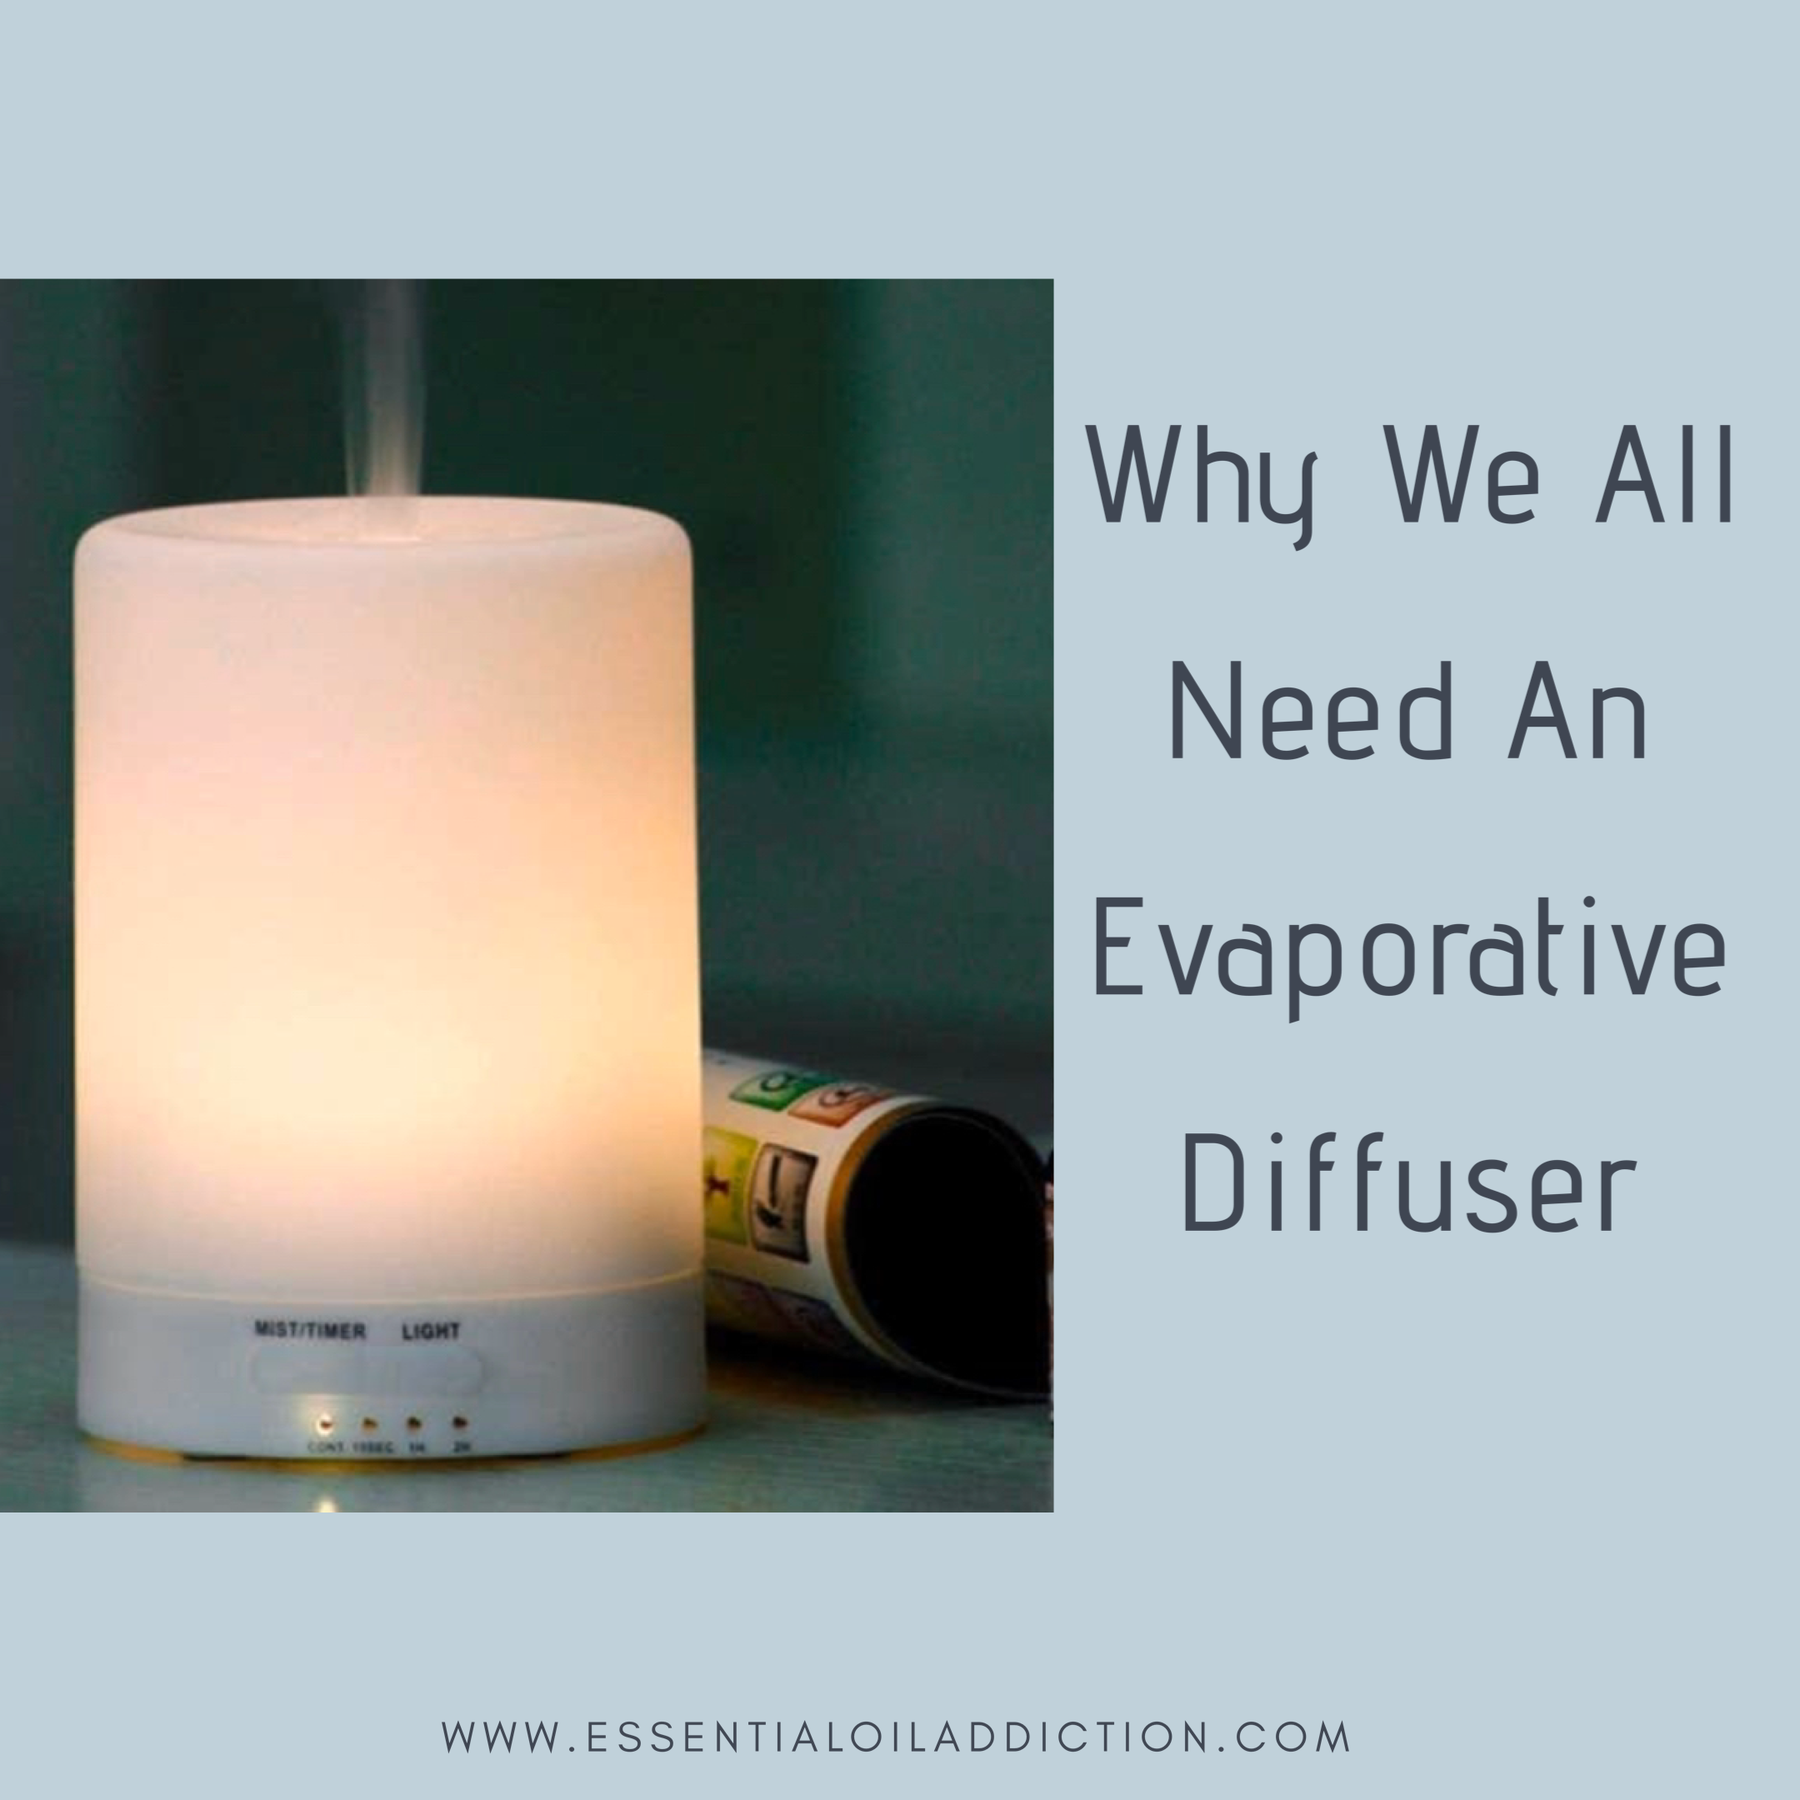 Why We All Need An Evaporative Diffuser